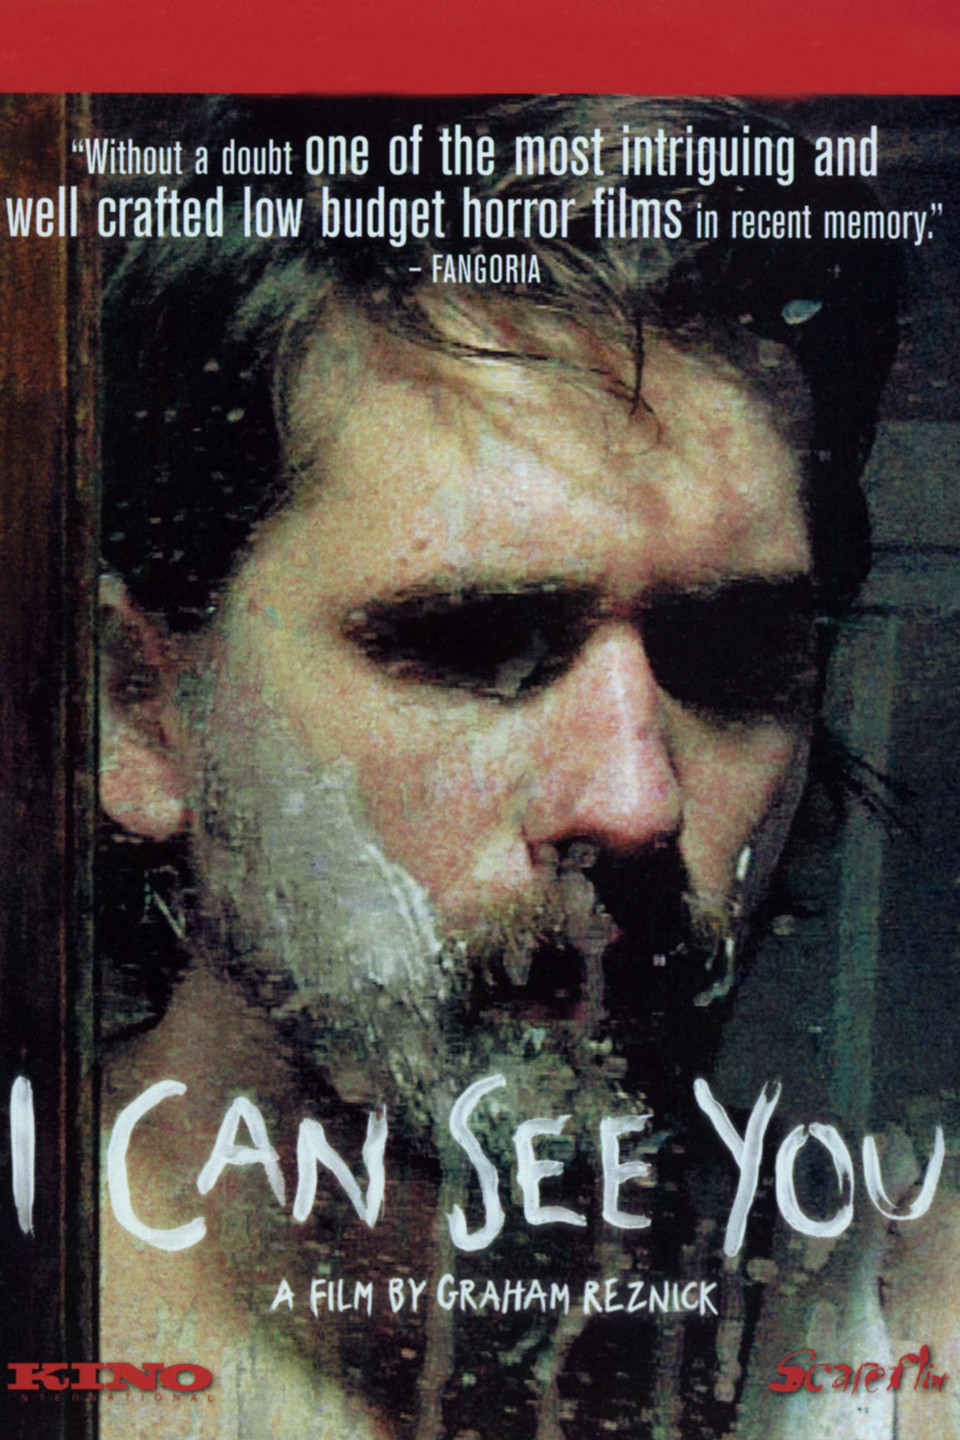 I Can See You (film) wwwgstaticcomtvthumbdvdboxart3529560p352956